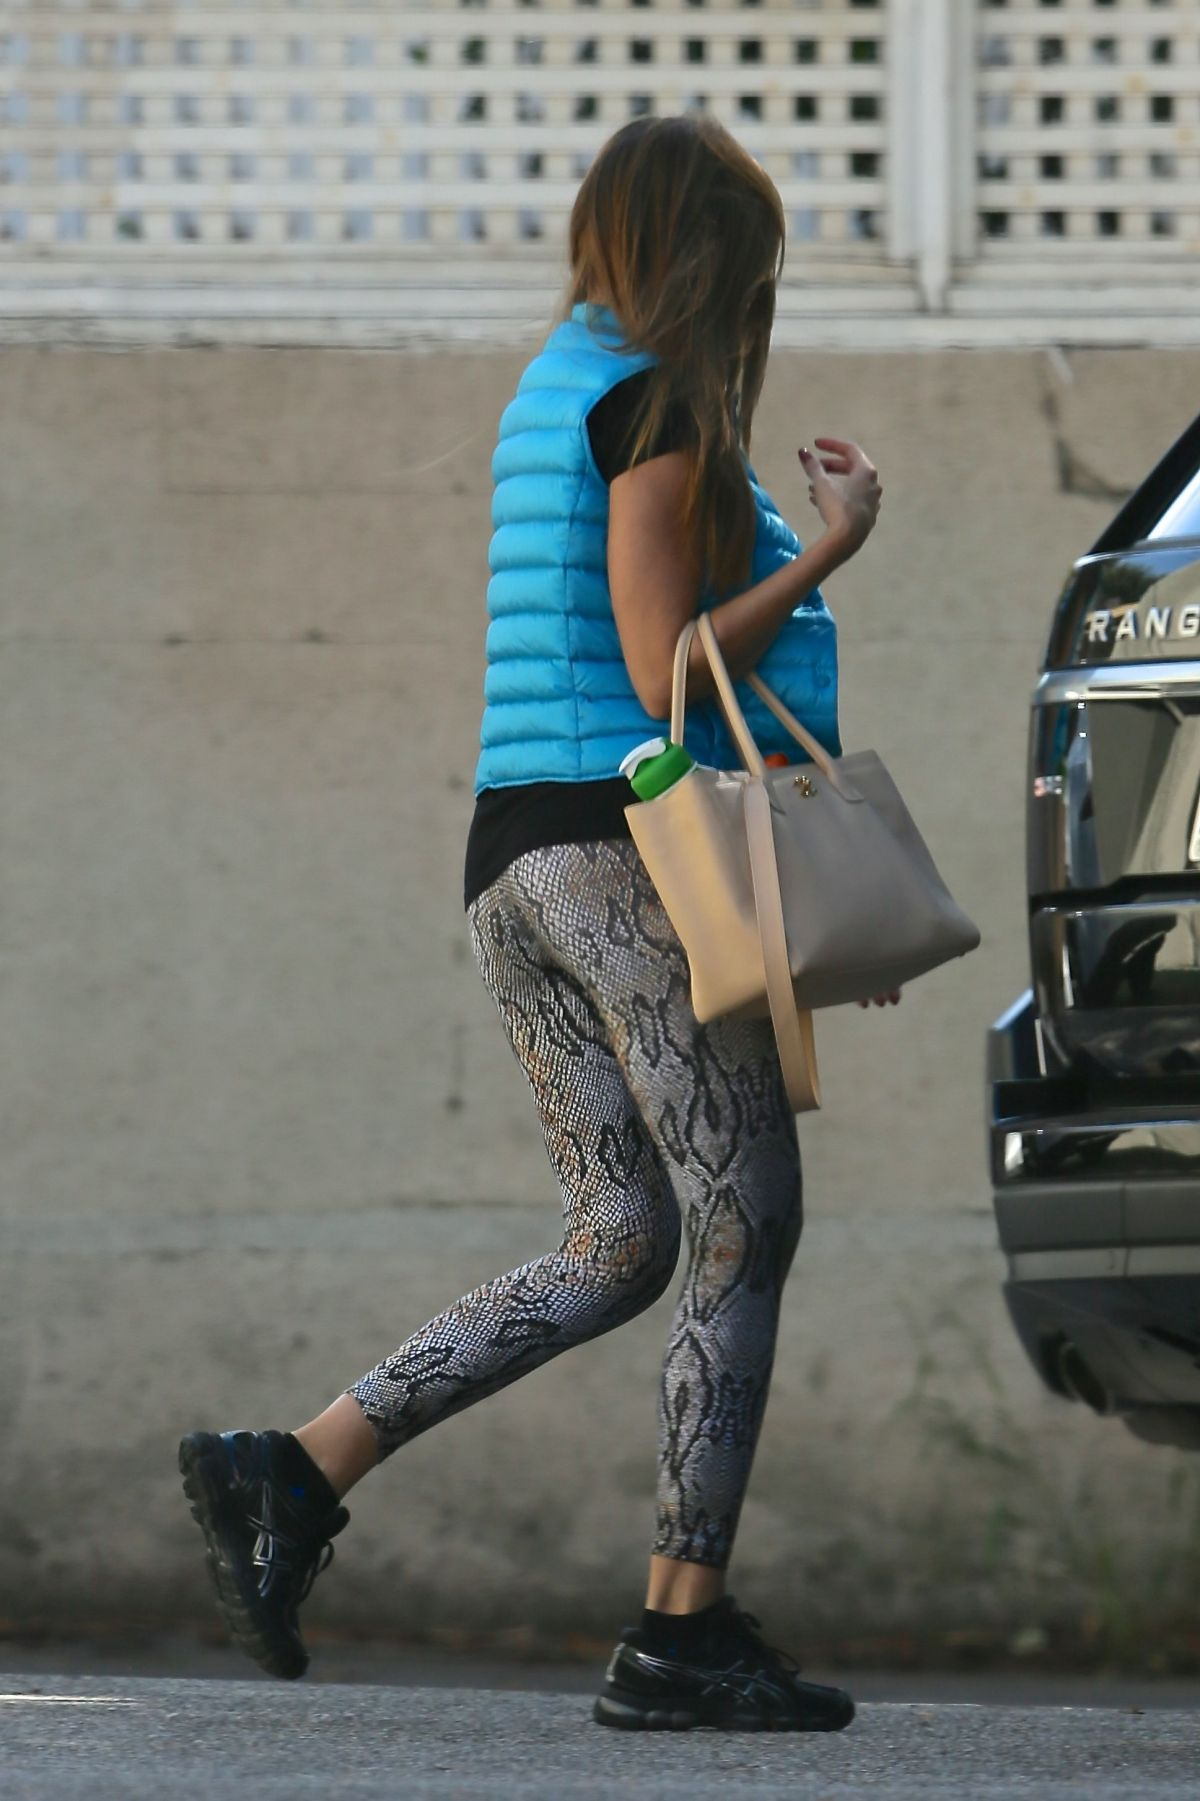 Kendall-Jenner-in-Leggings-205 - SAWFIRST